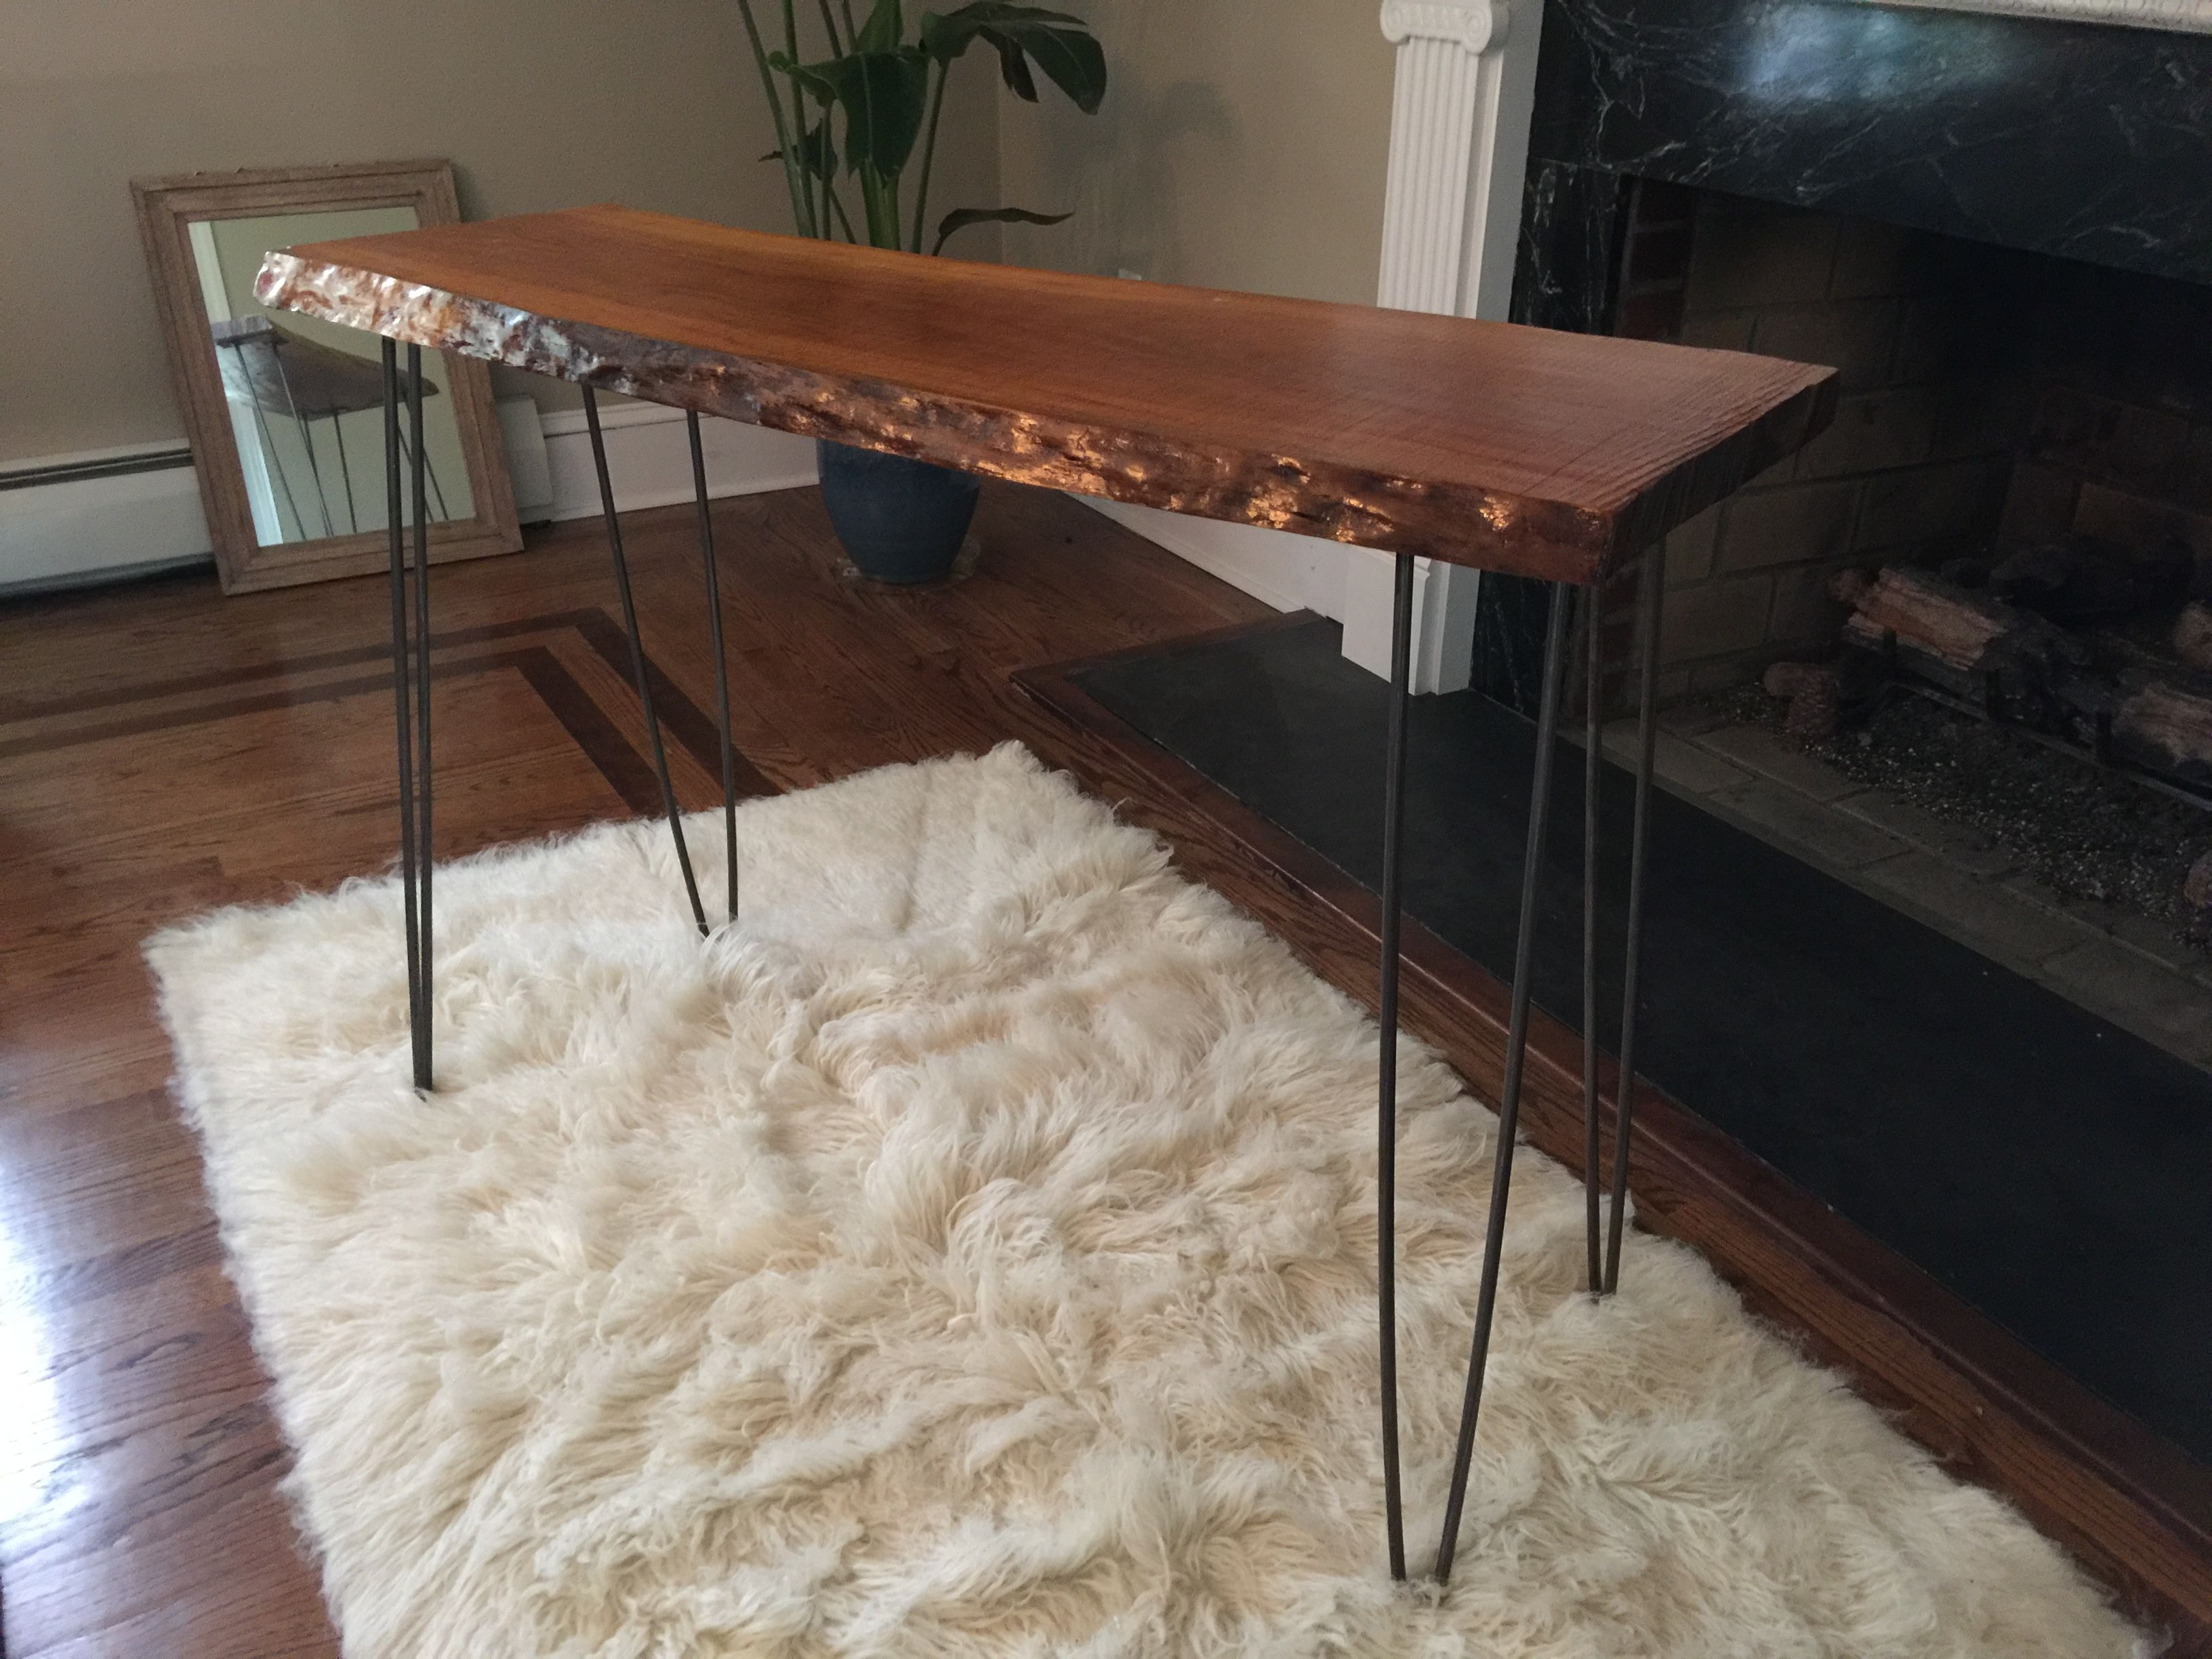 Live Edge Cherry Console Table 1 Got The Raw Slab From A Lumber Yard About 20 And Precut To About 4 Diy Table Diy Kitchen Cabinets Makeover Live Edge Table